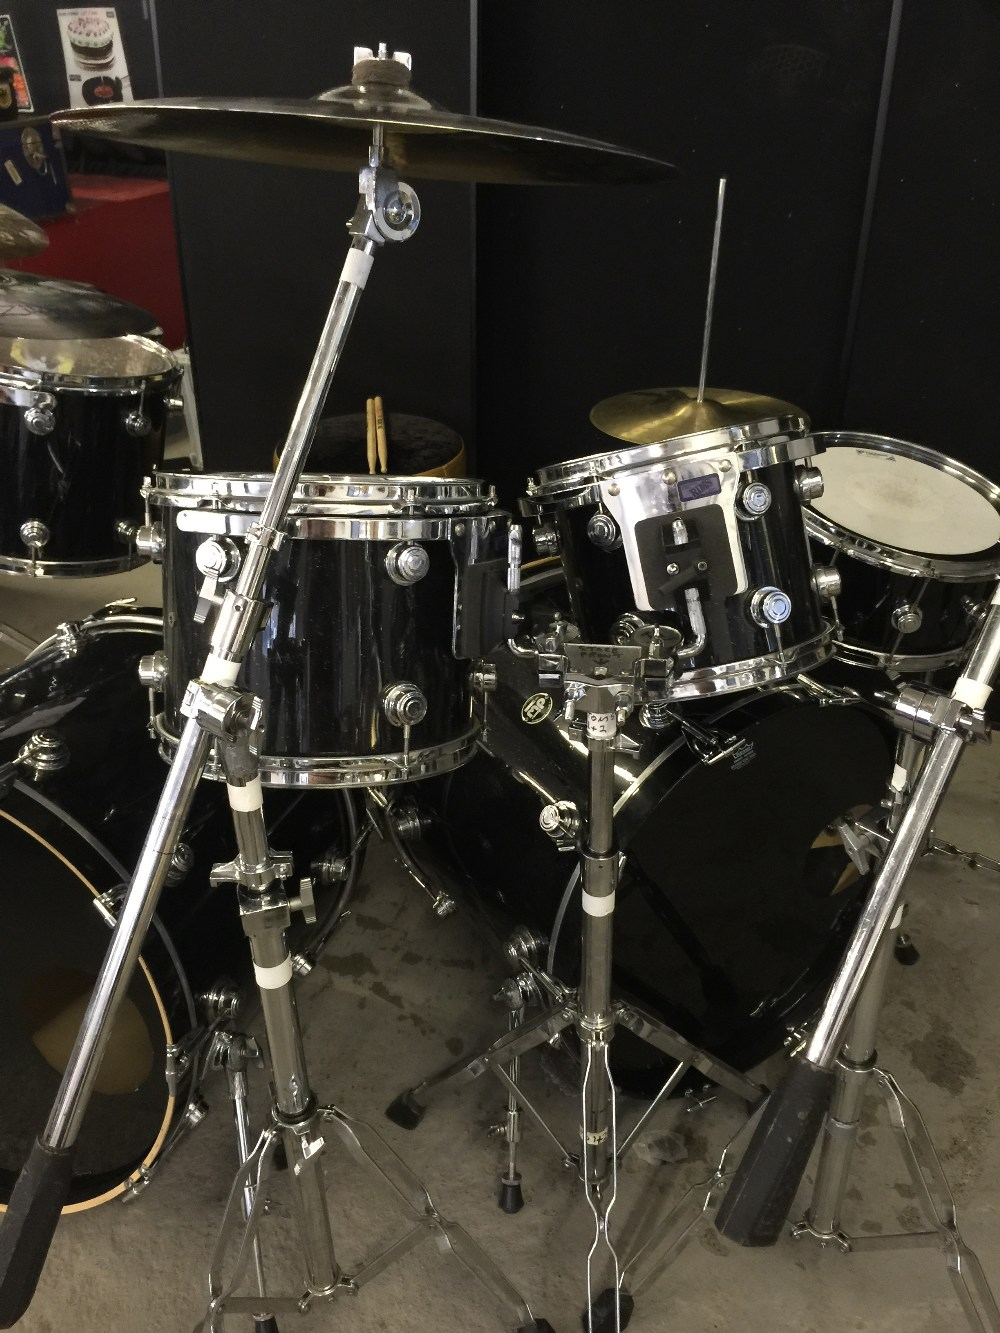 MOTORHEAD & PHILTHY ANIMAL - a DW Drum Workshop black speckled drum kit from the estate of Phil - Image 6 of 10